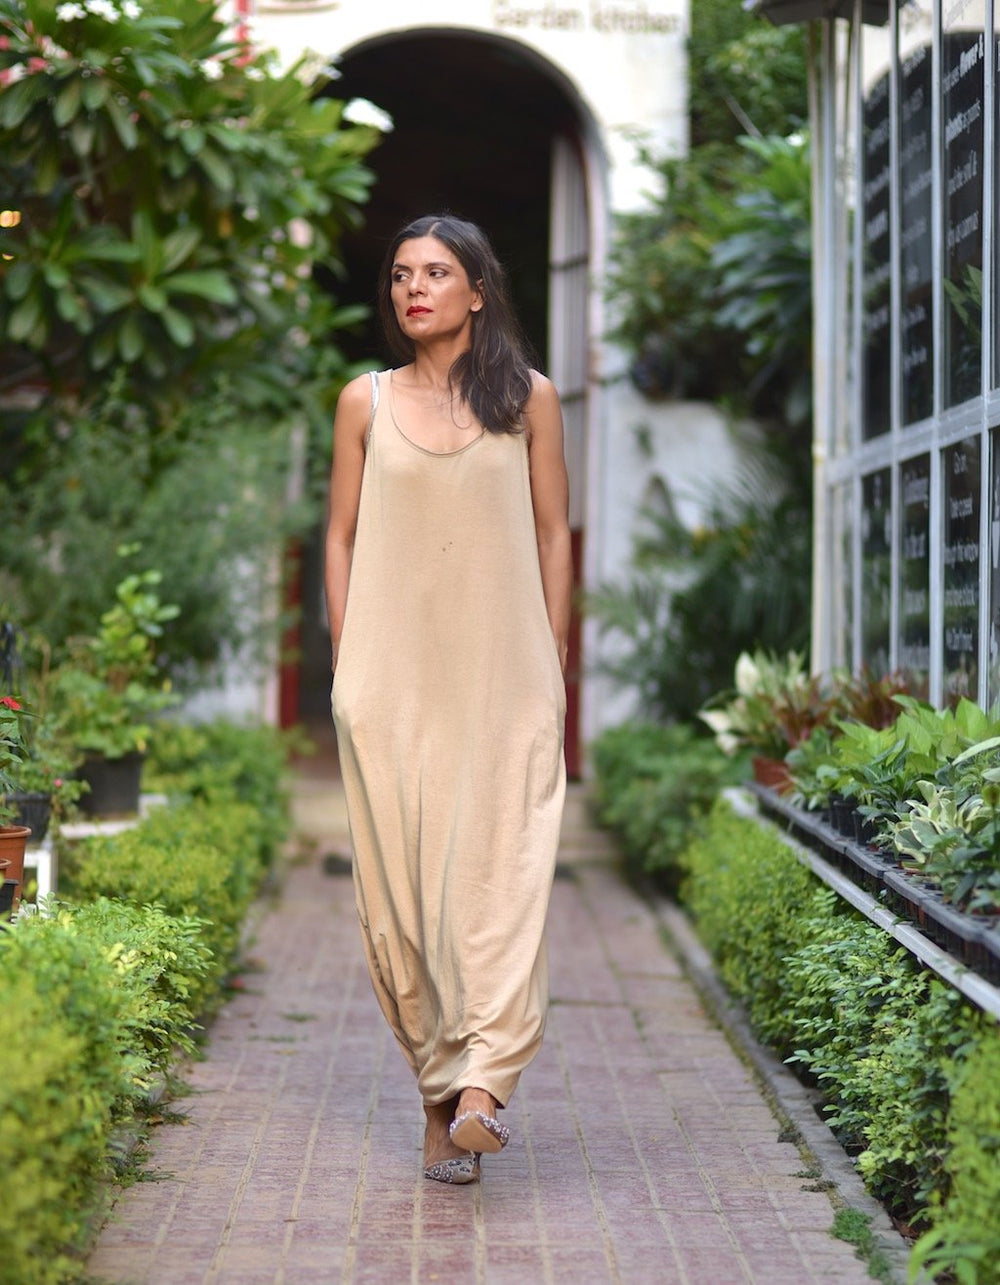 Moscow, Organic Cotton Jersey Maxi Dress in Beige, Embroidered at Shoulder - shopkaito